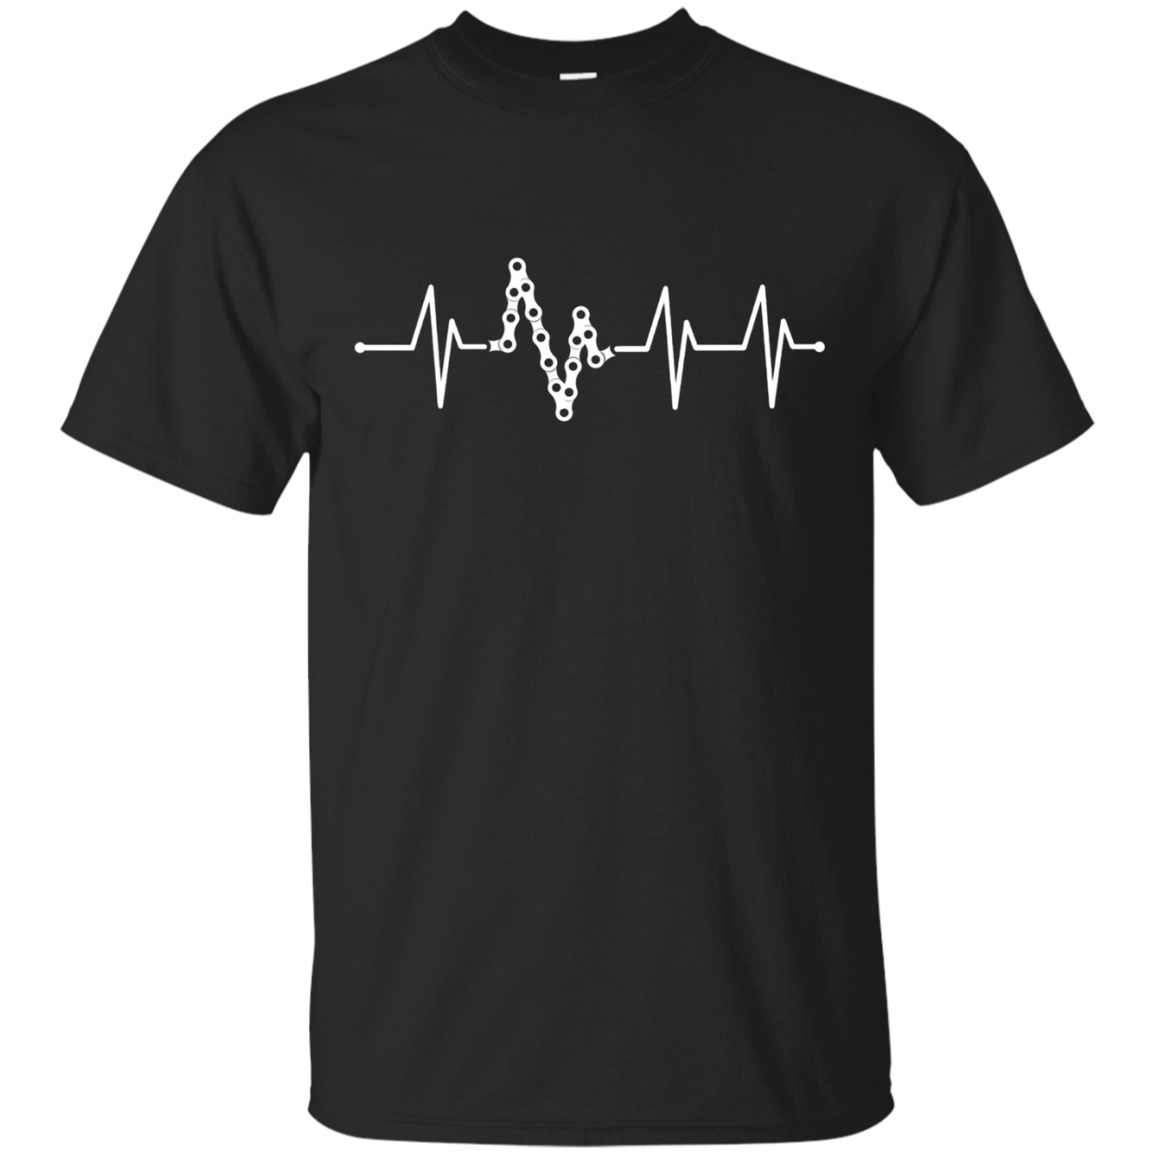 Bike Heartbeat Pulse Shirt - Funny Bike Shirt